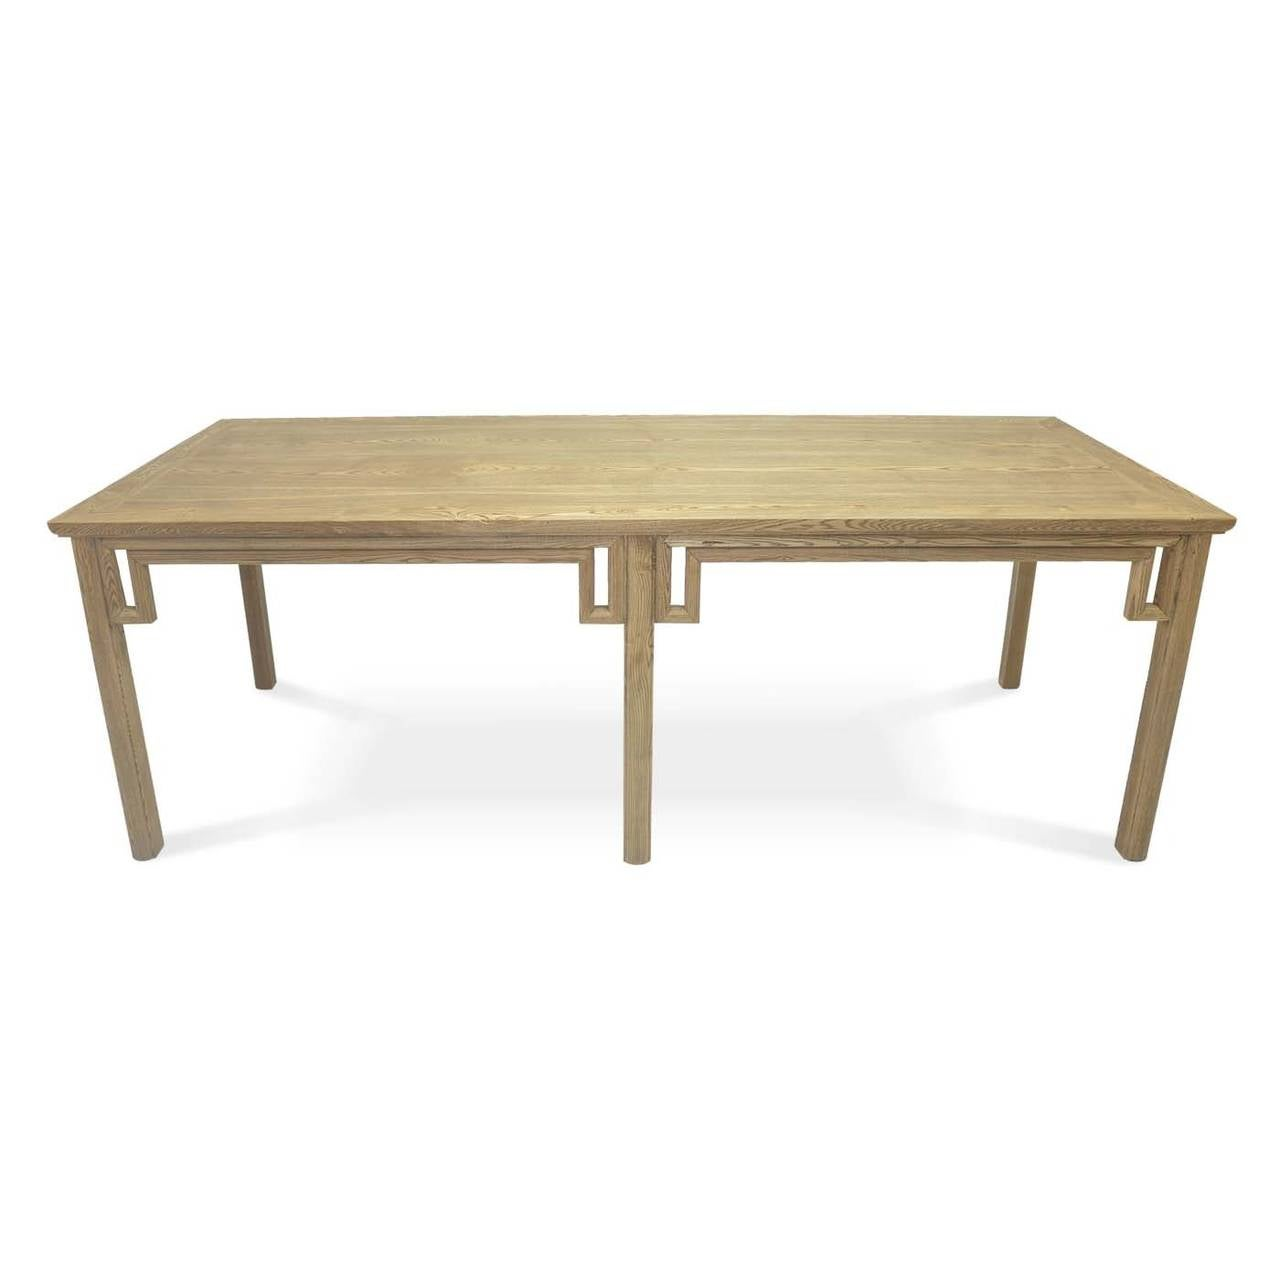 Ming Style Farm Table For Sale at 1stdibs